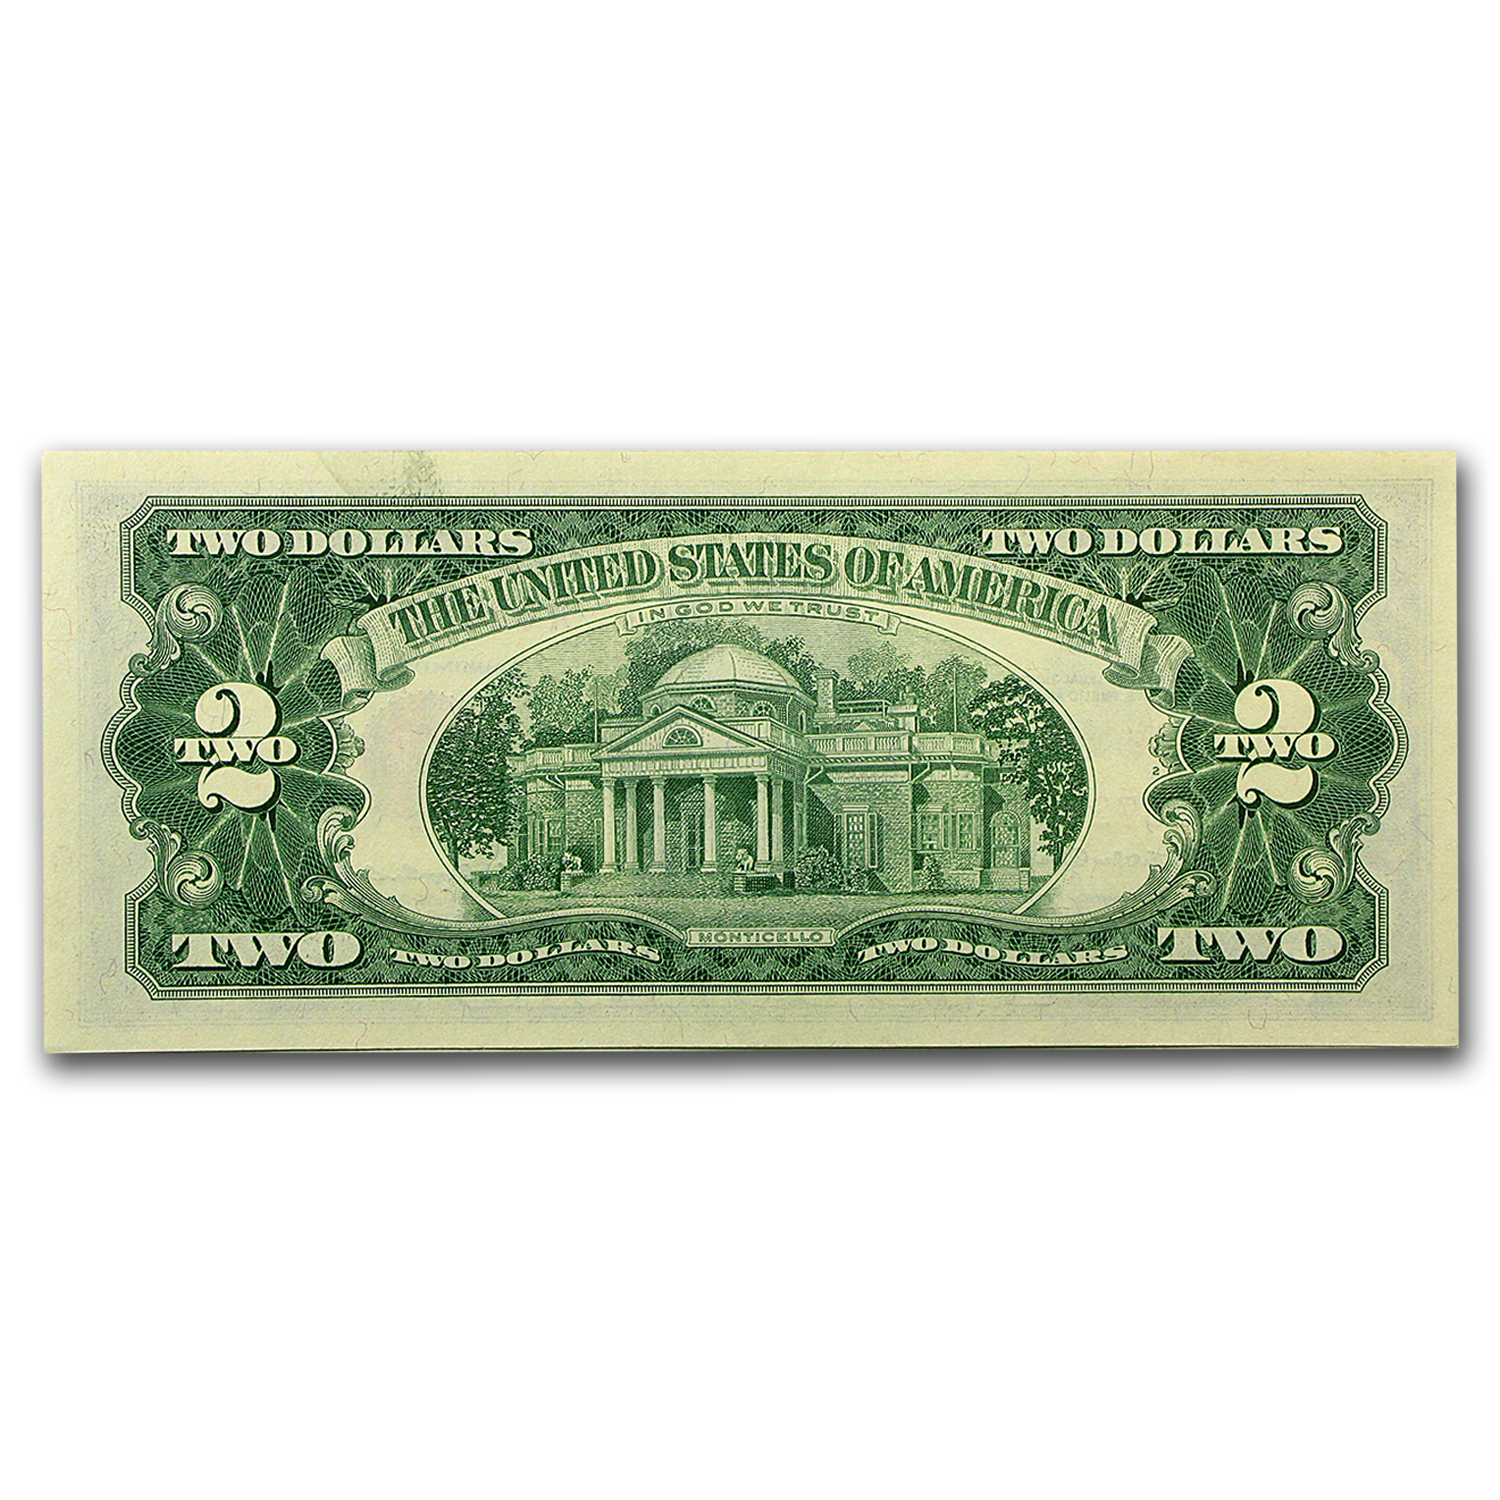 1963s $2.00 U.S. Notes Red Seal AU